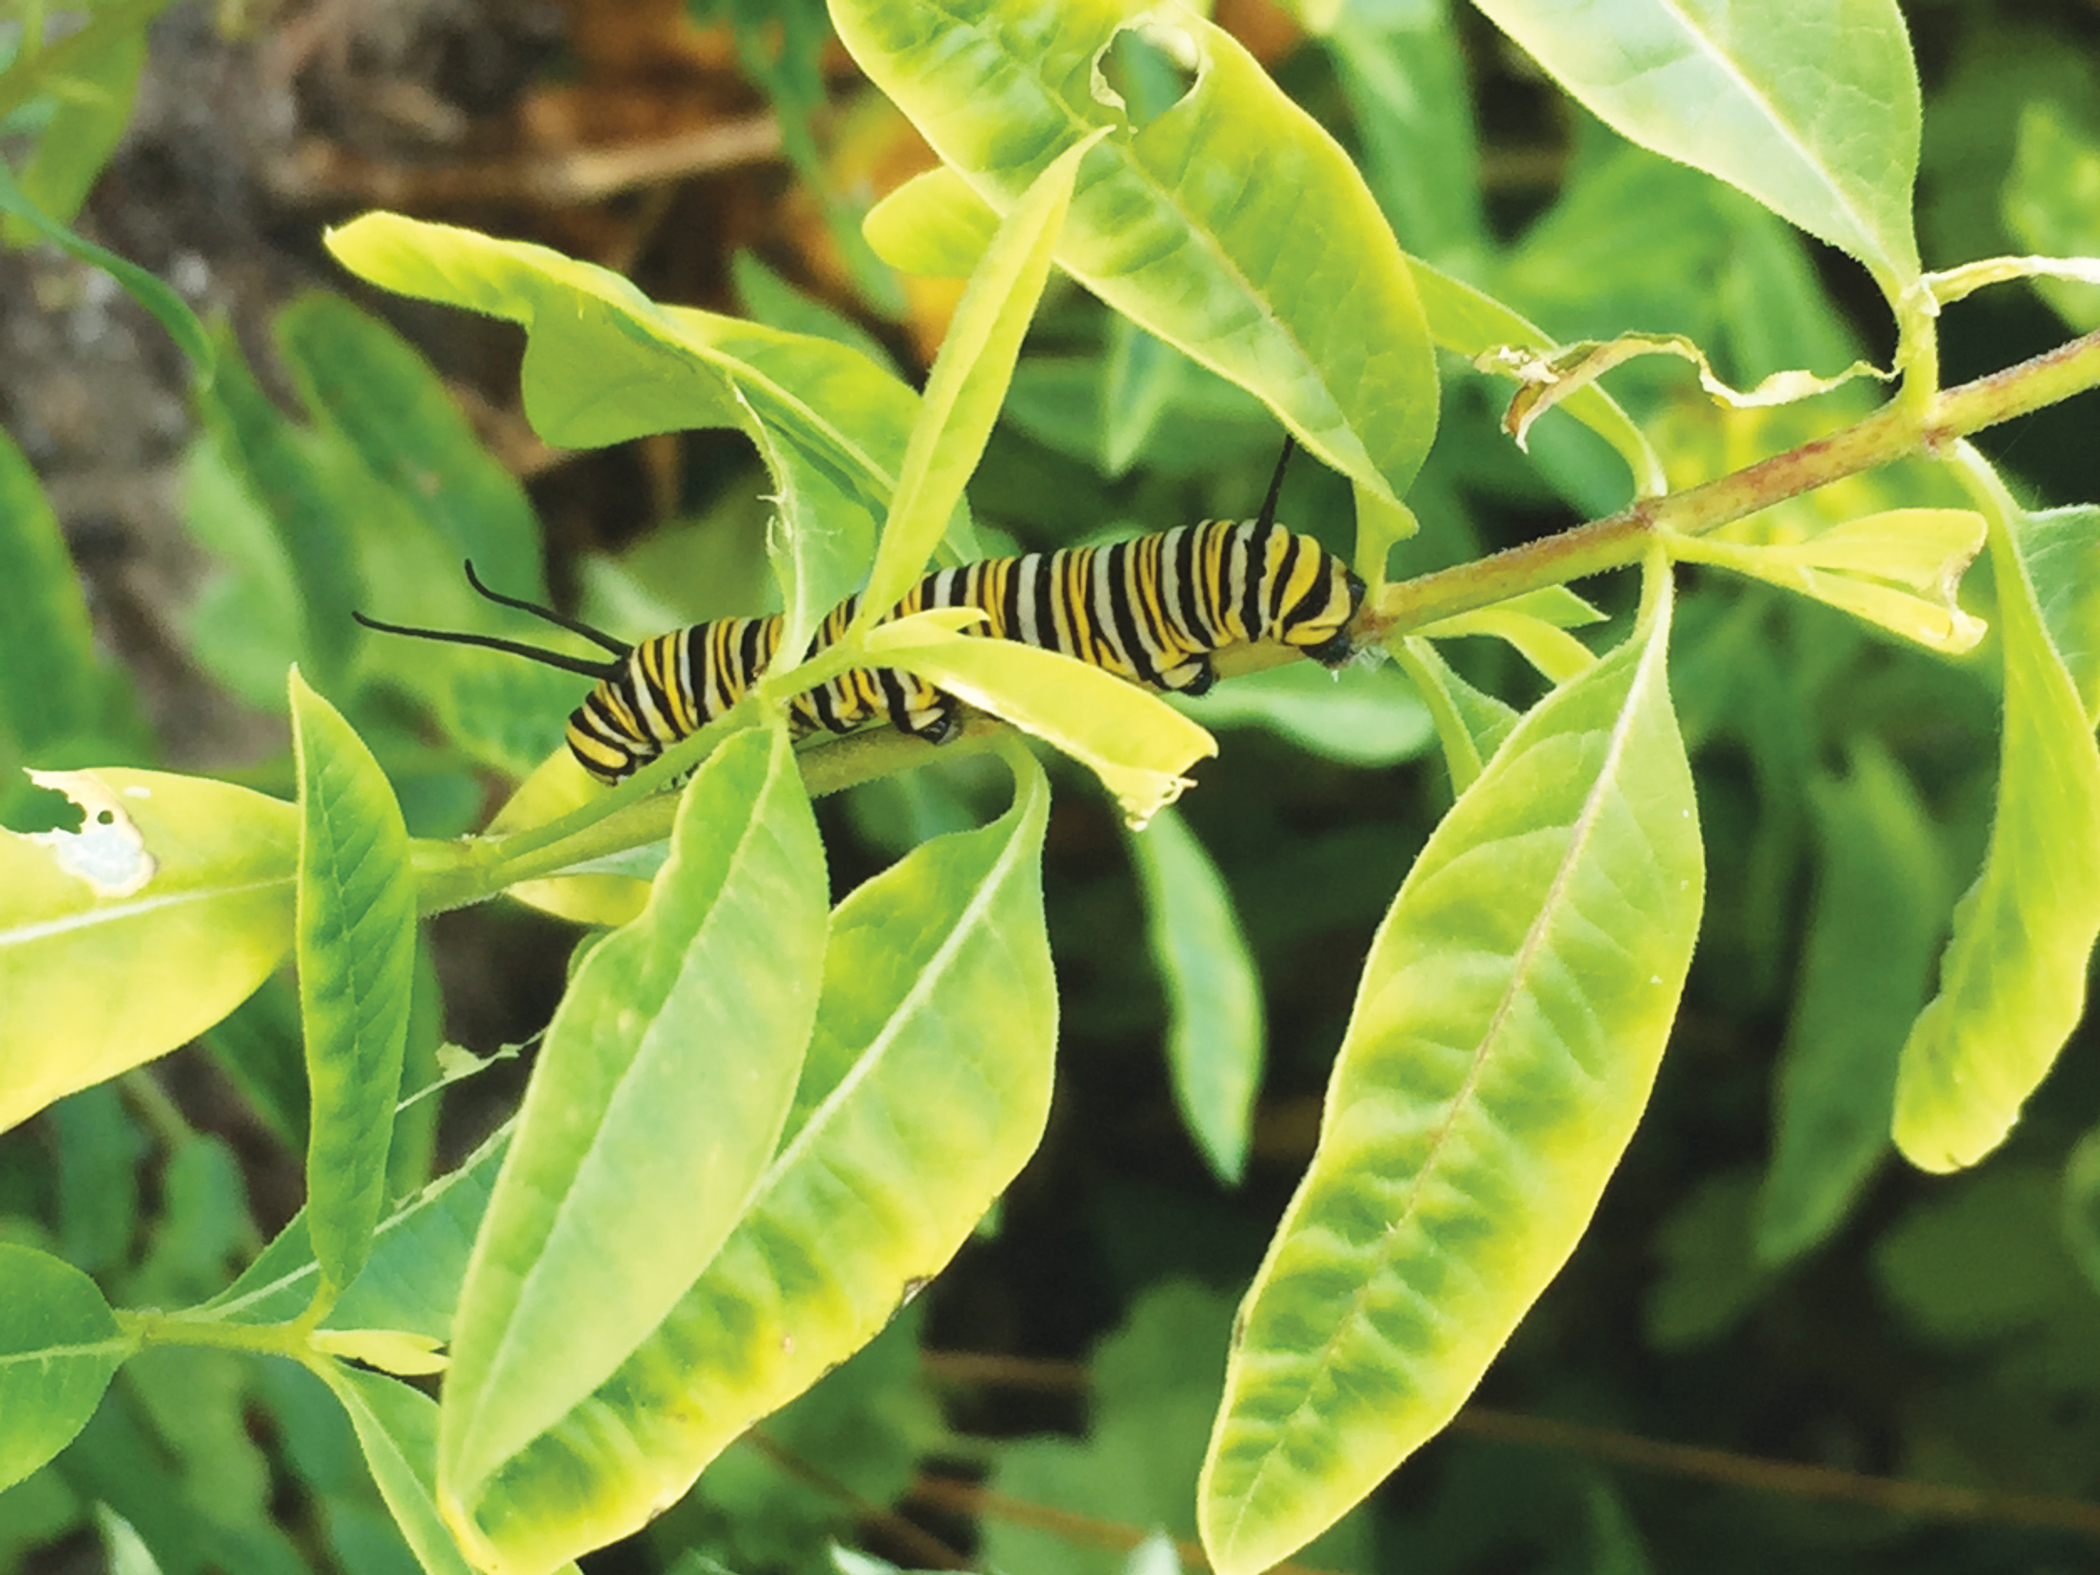 A monarch butterfly caterpillar munches on milkweed leaves. Image by  LADYBUG.